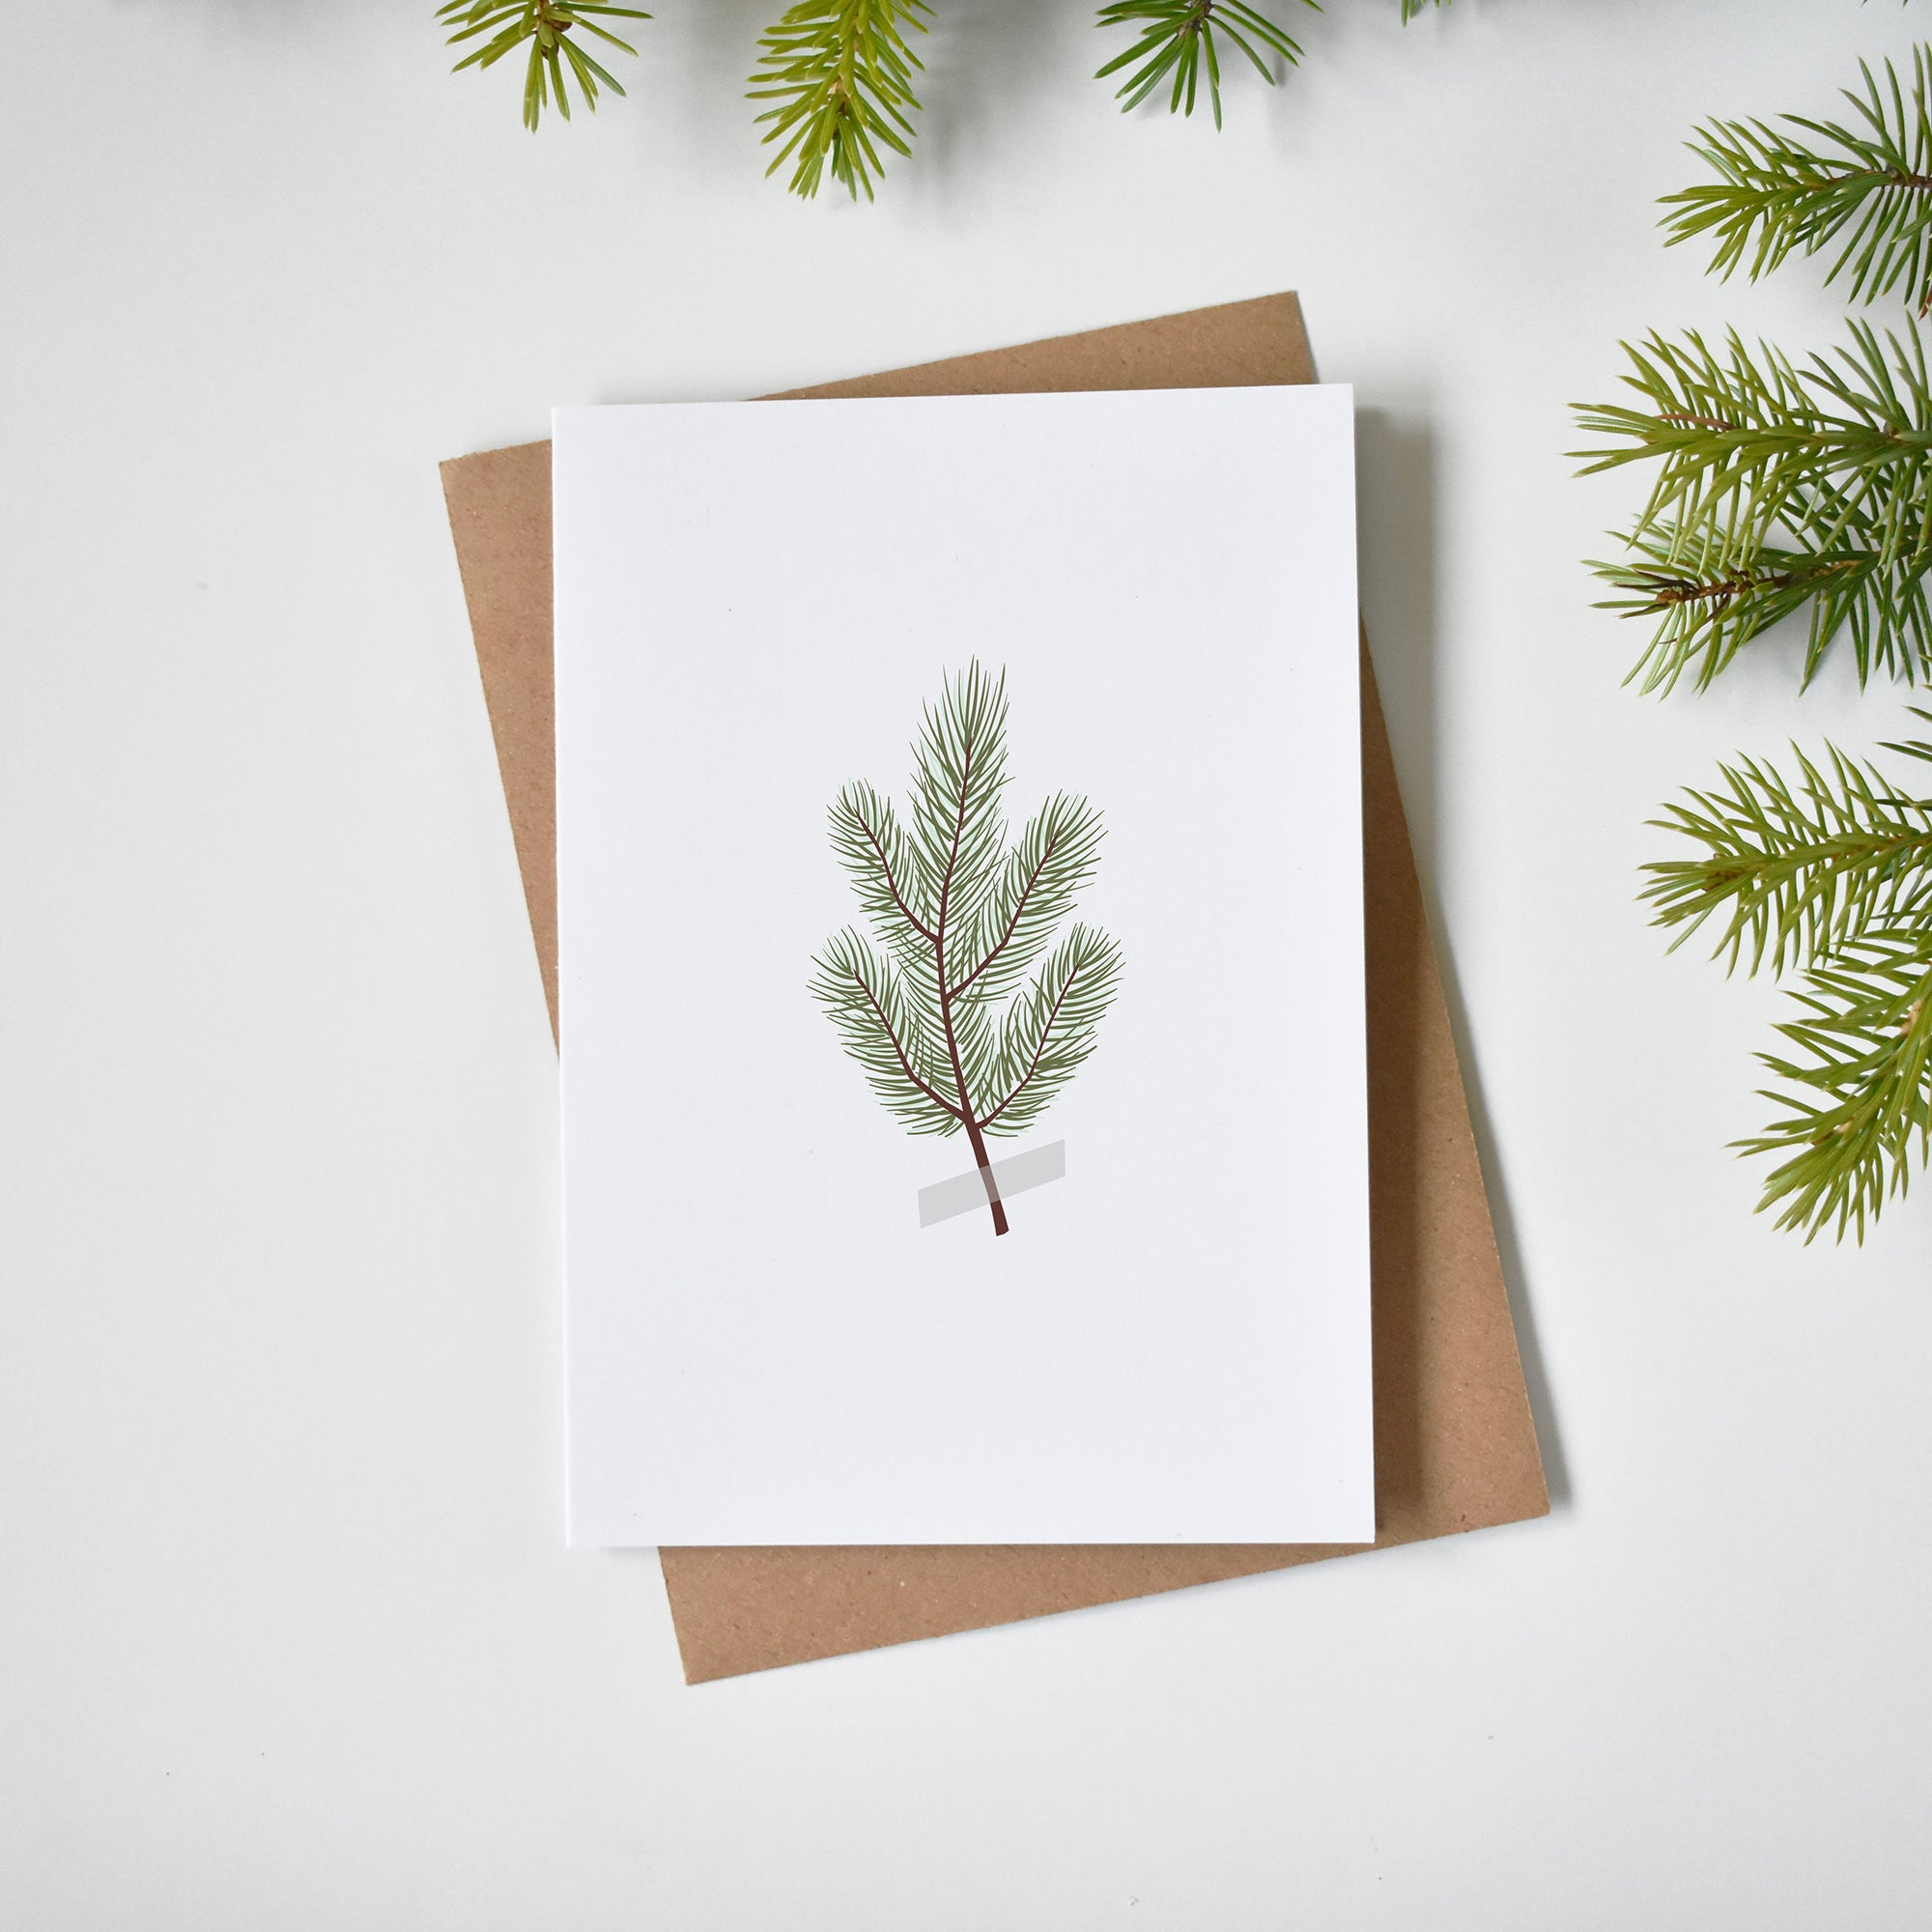 Pine branch Christmas card elemente design